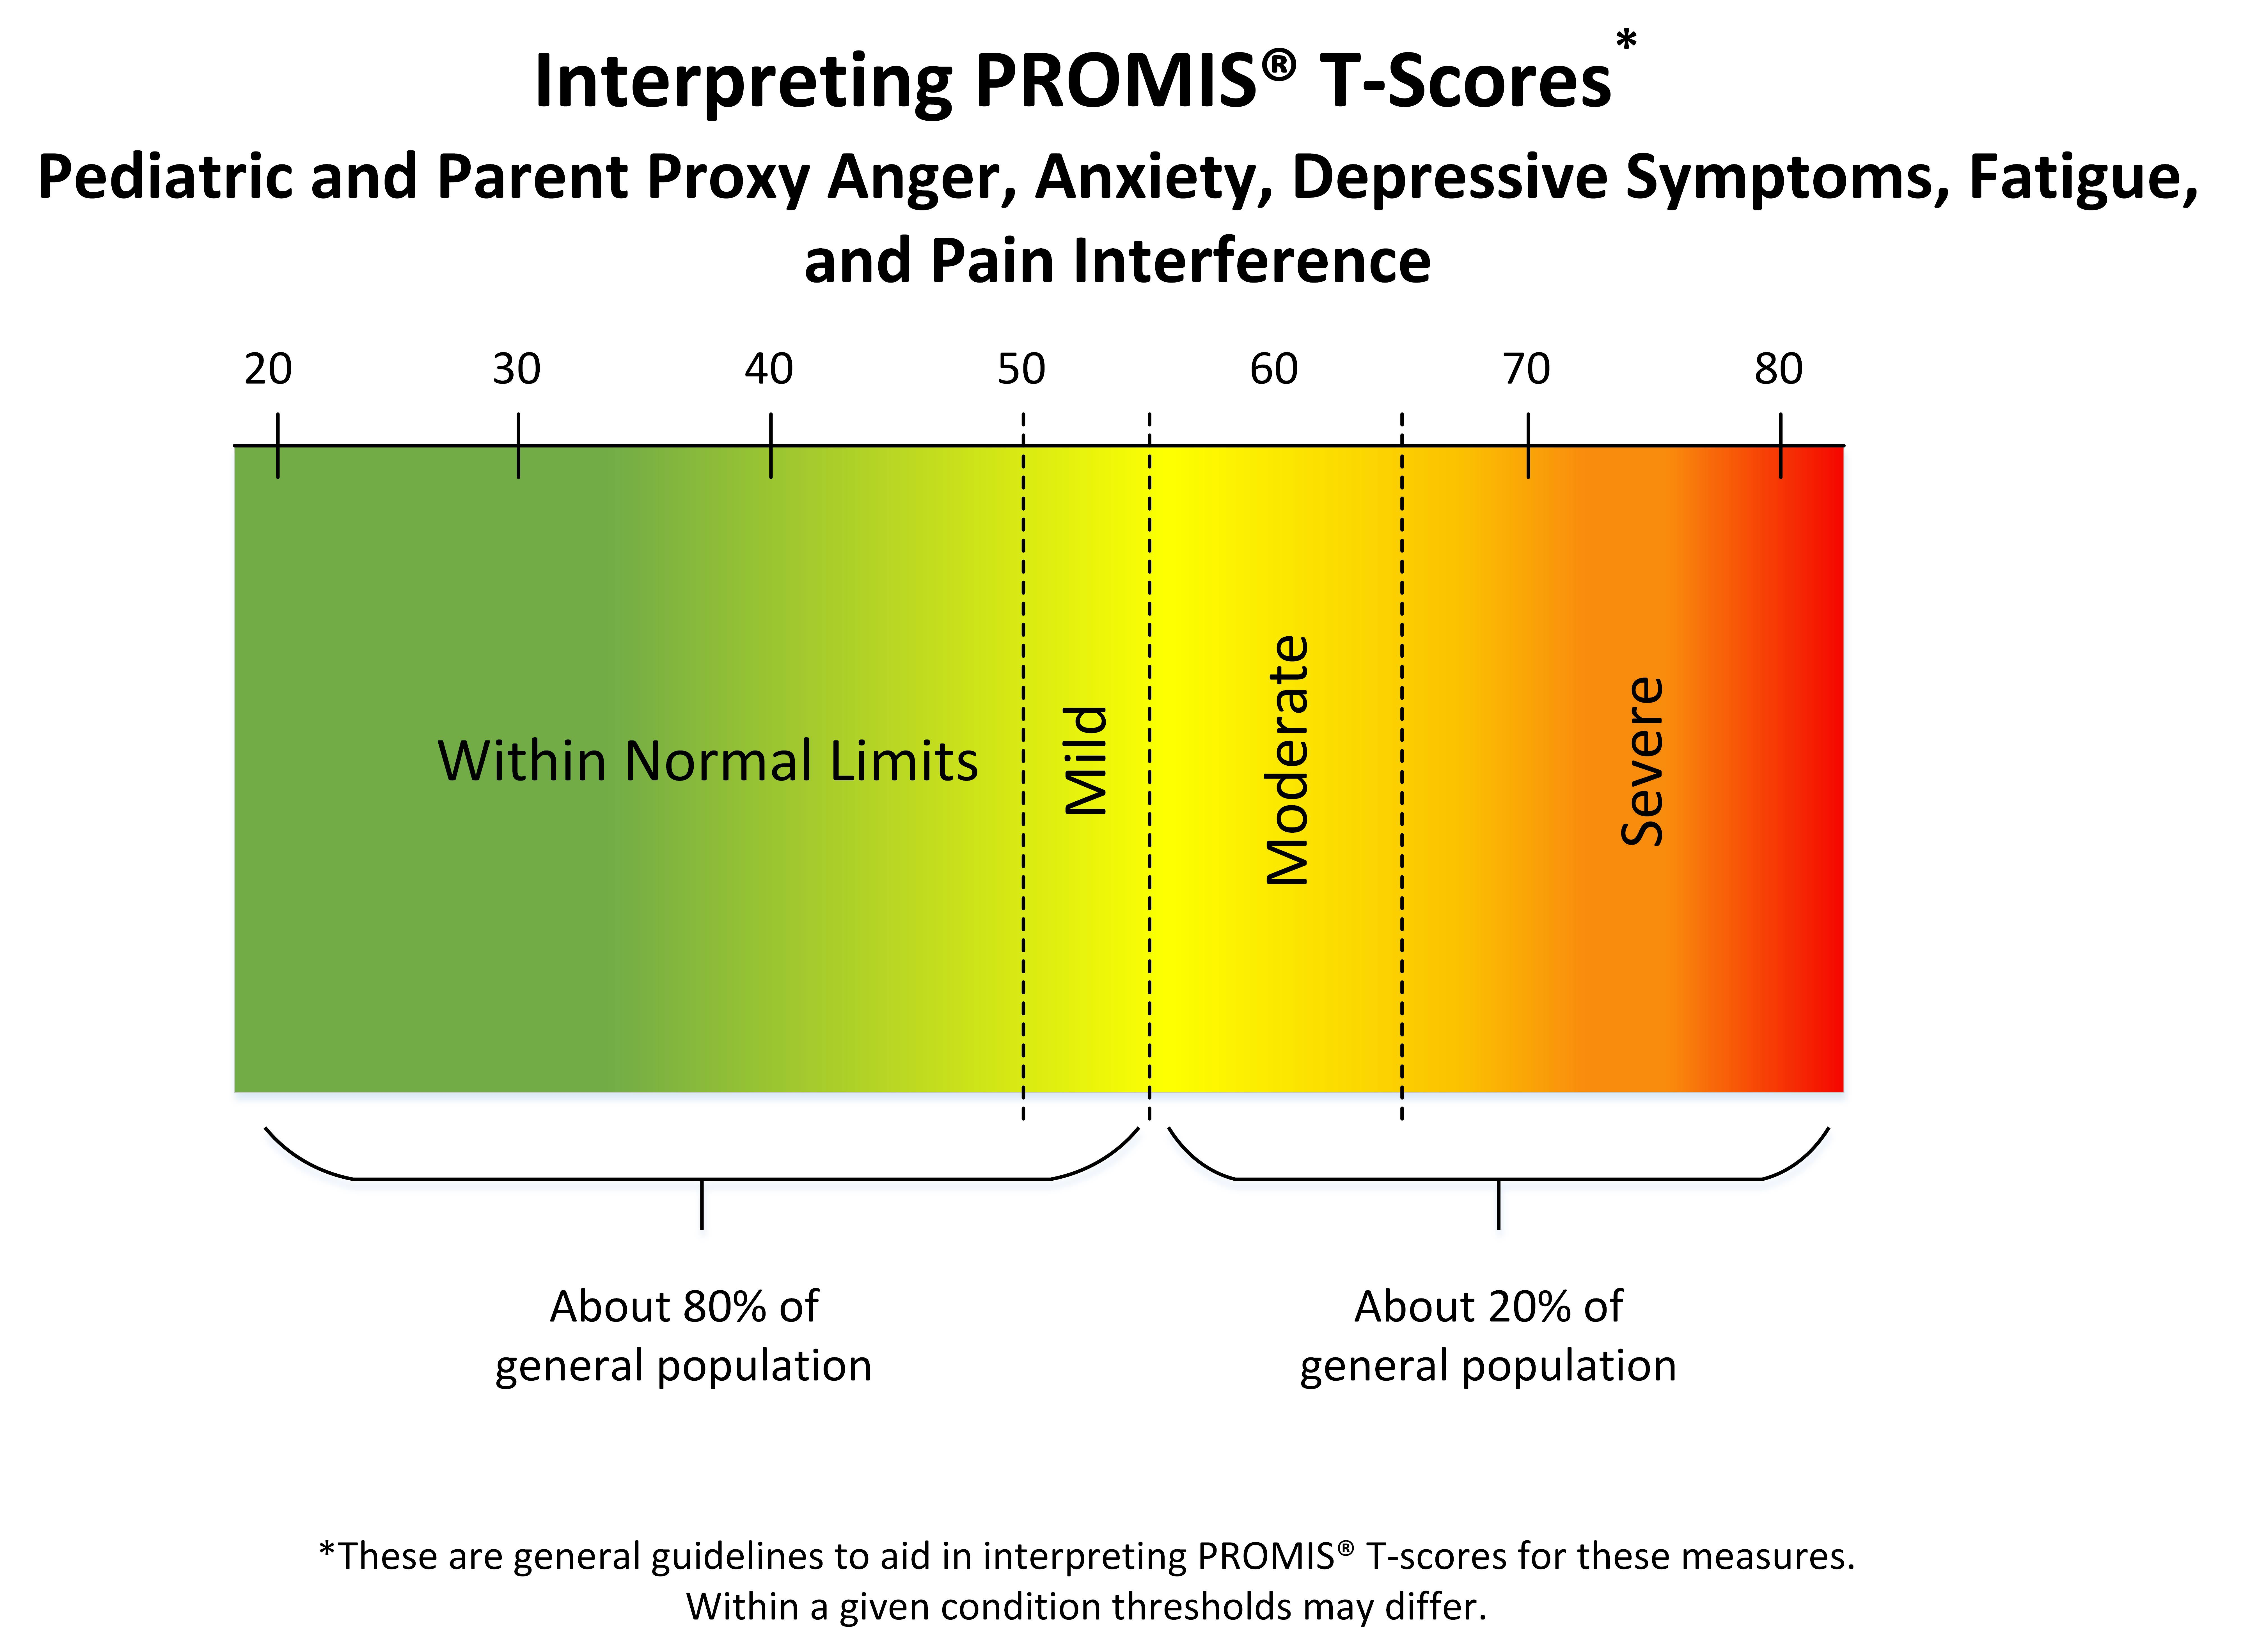 score interpretation image selected peds revised Dec 11 2017